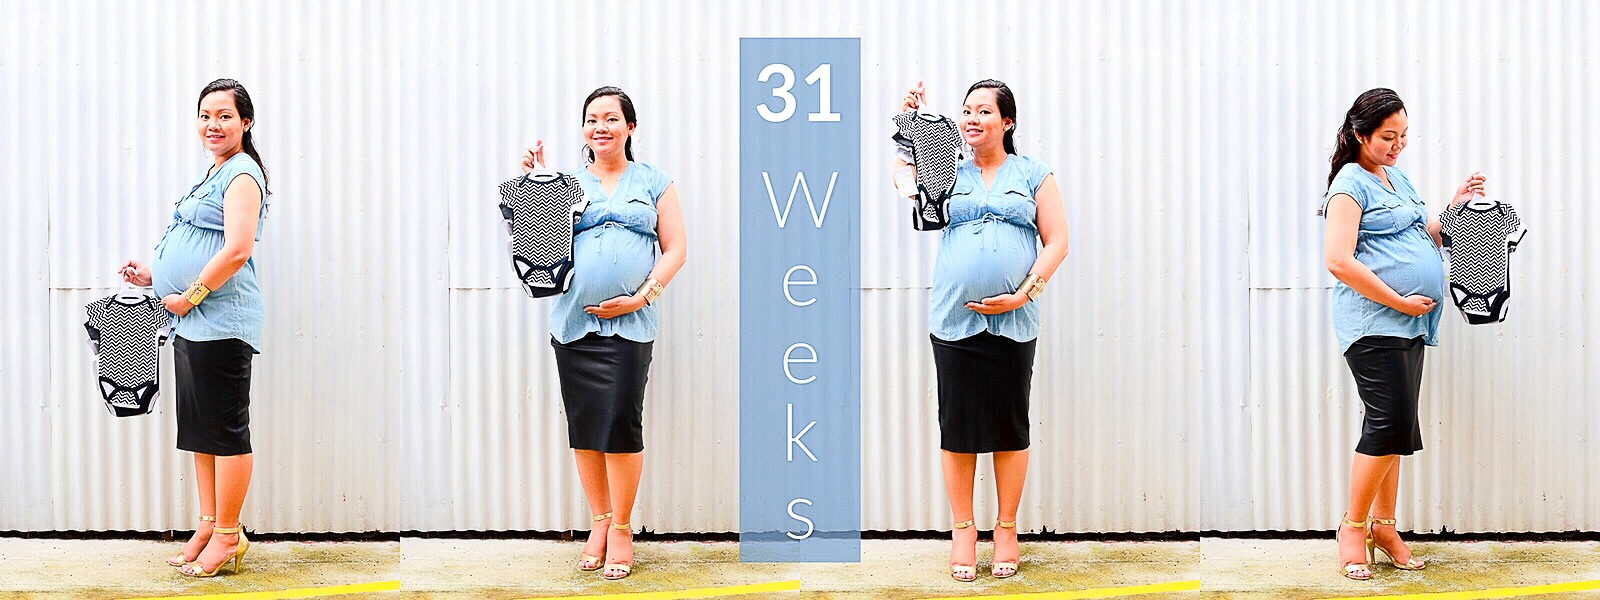 Pregnancy Diary: 31 Weeks and 6 Days (October 13)